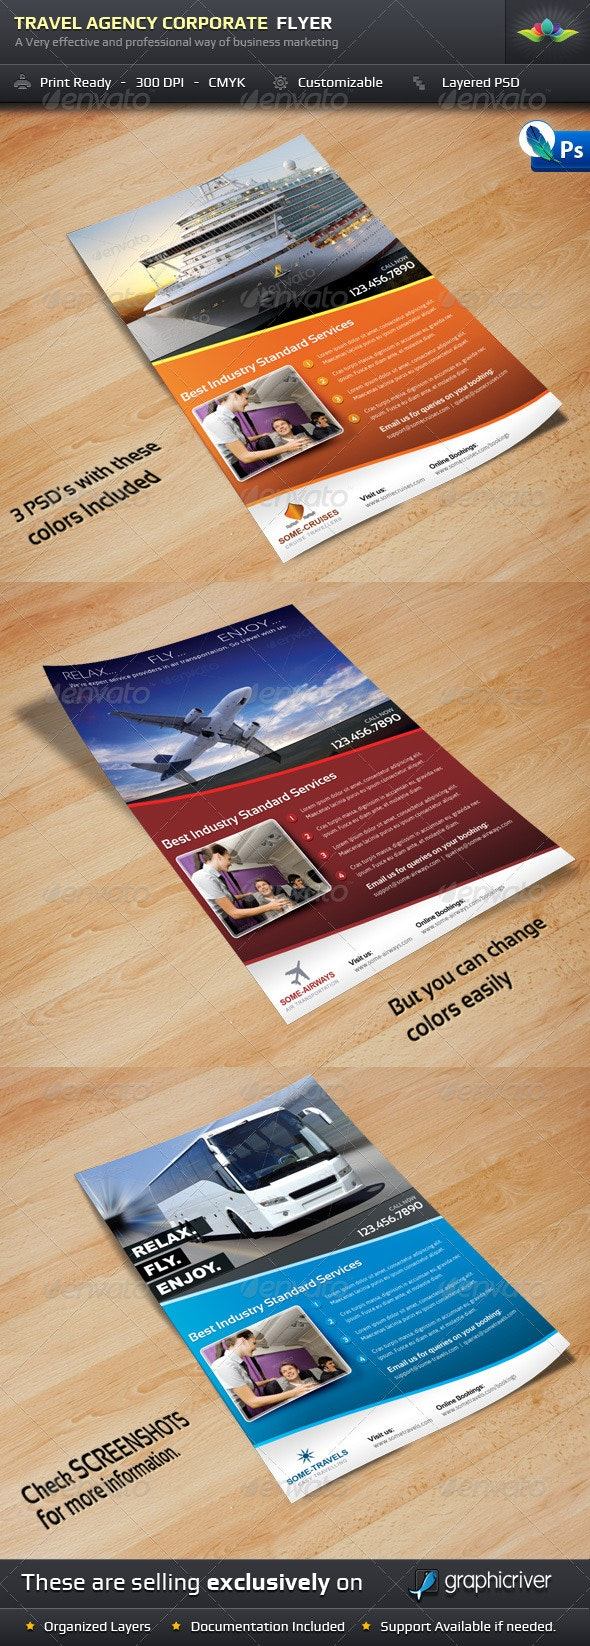 Travel Agency Corporate Flyer - Corporate Flyers